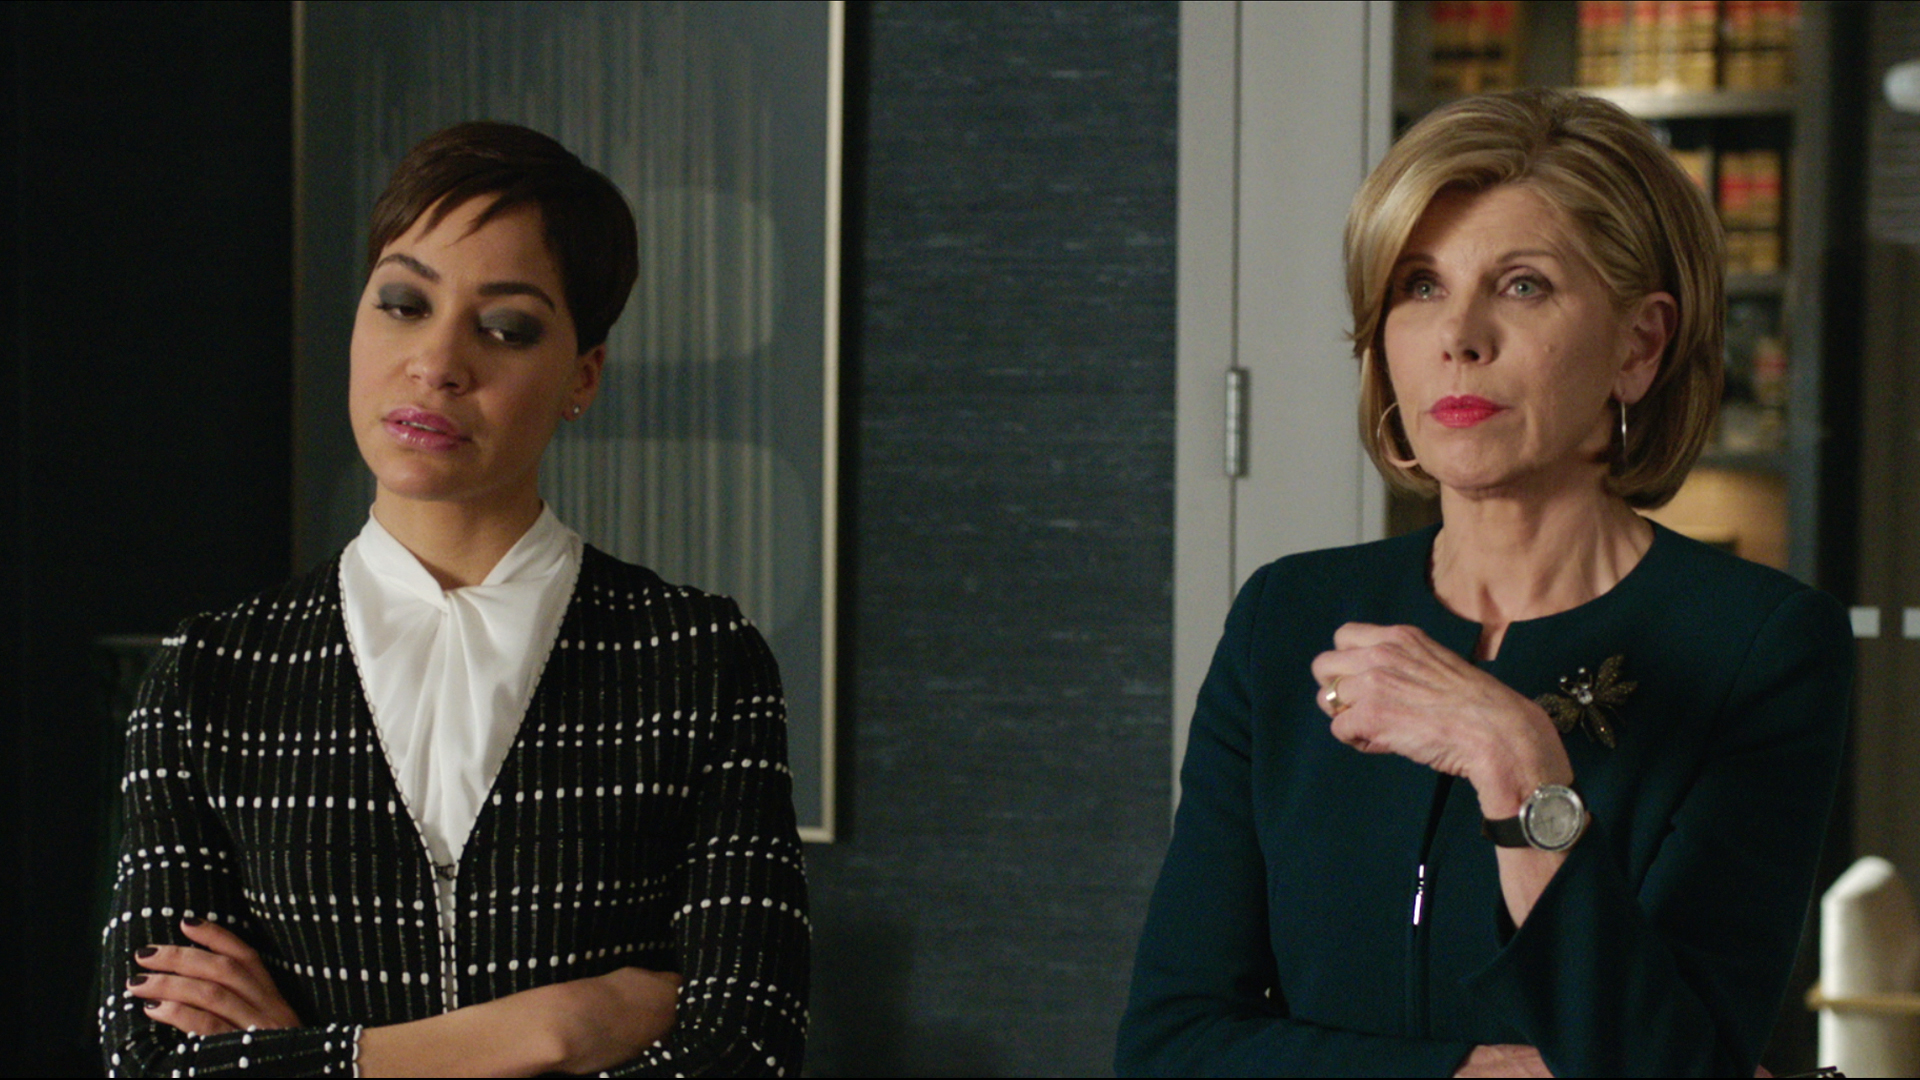 Watch The Good Fight Season 1 Episode 5: Stoppable: Requiem for an Airdate  - Full show on CBS All Access